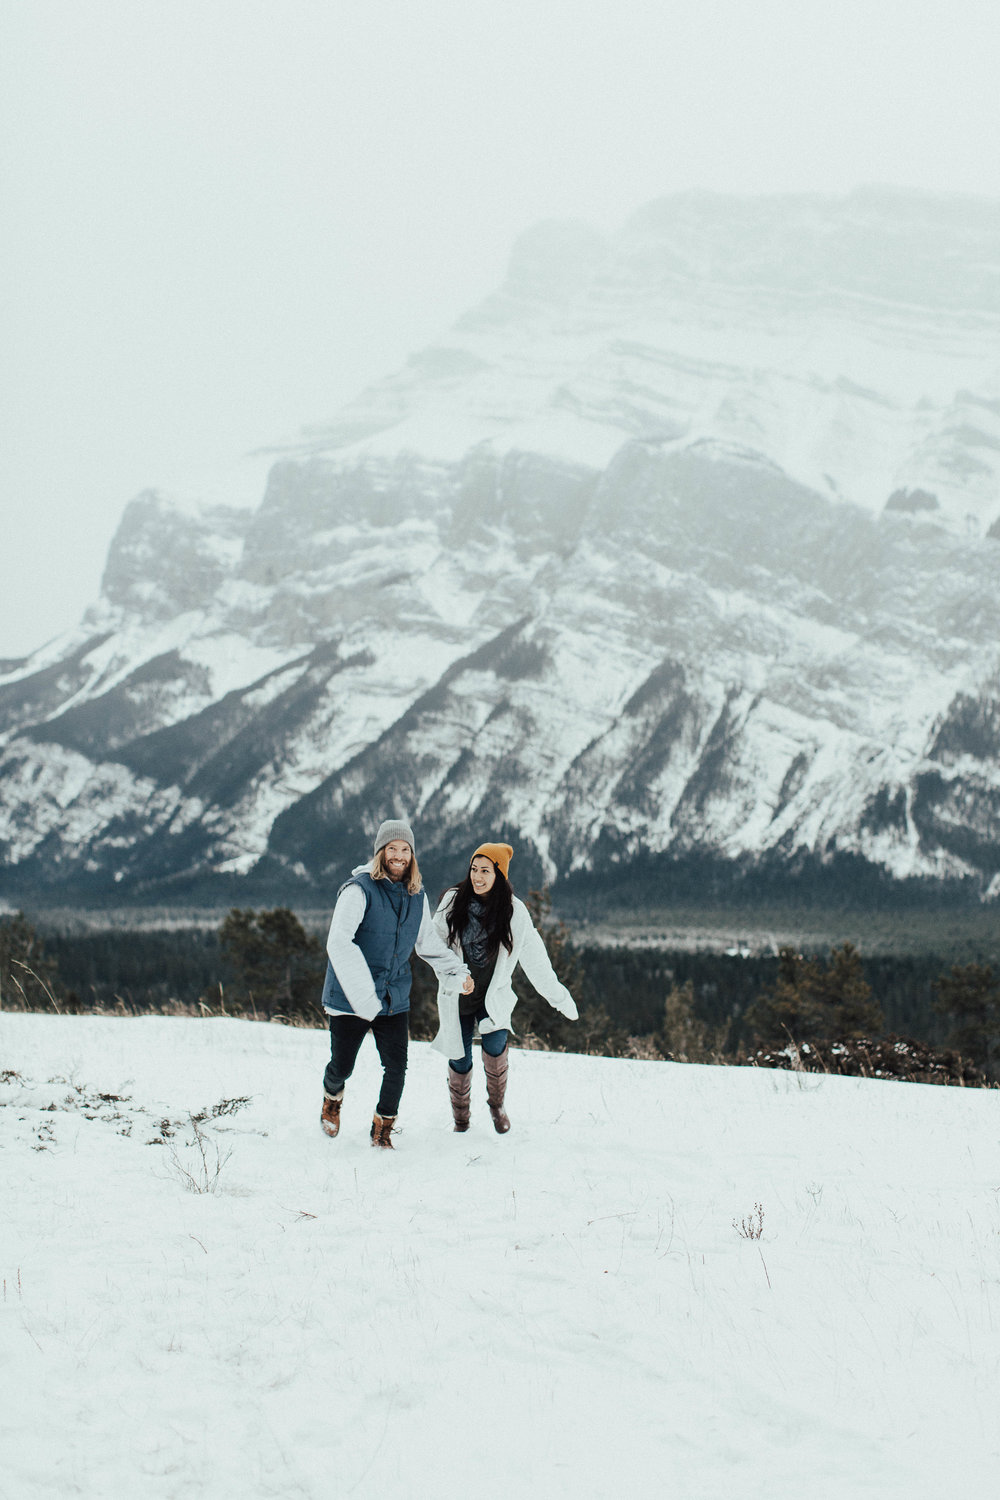 Banff Engagement Photographer - Winter Mountain Adventure Engagement Session - Michelle Larmand Photography-010